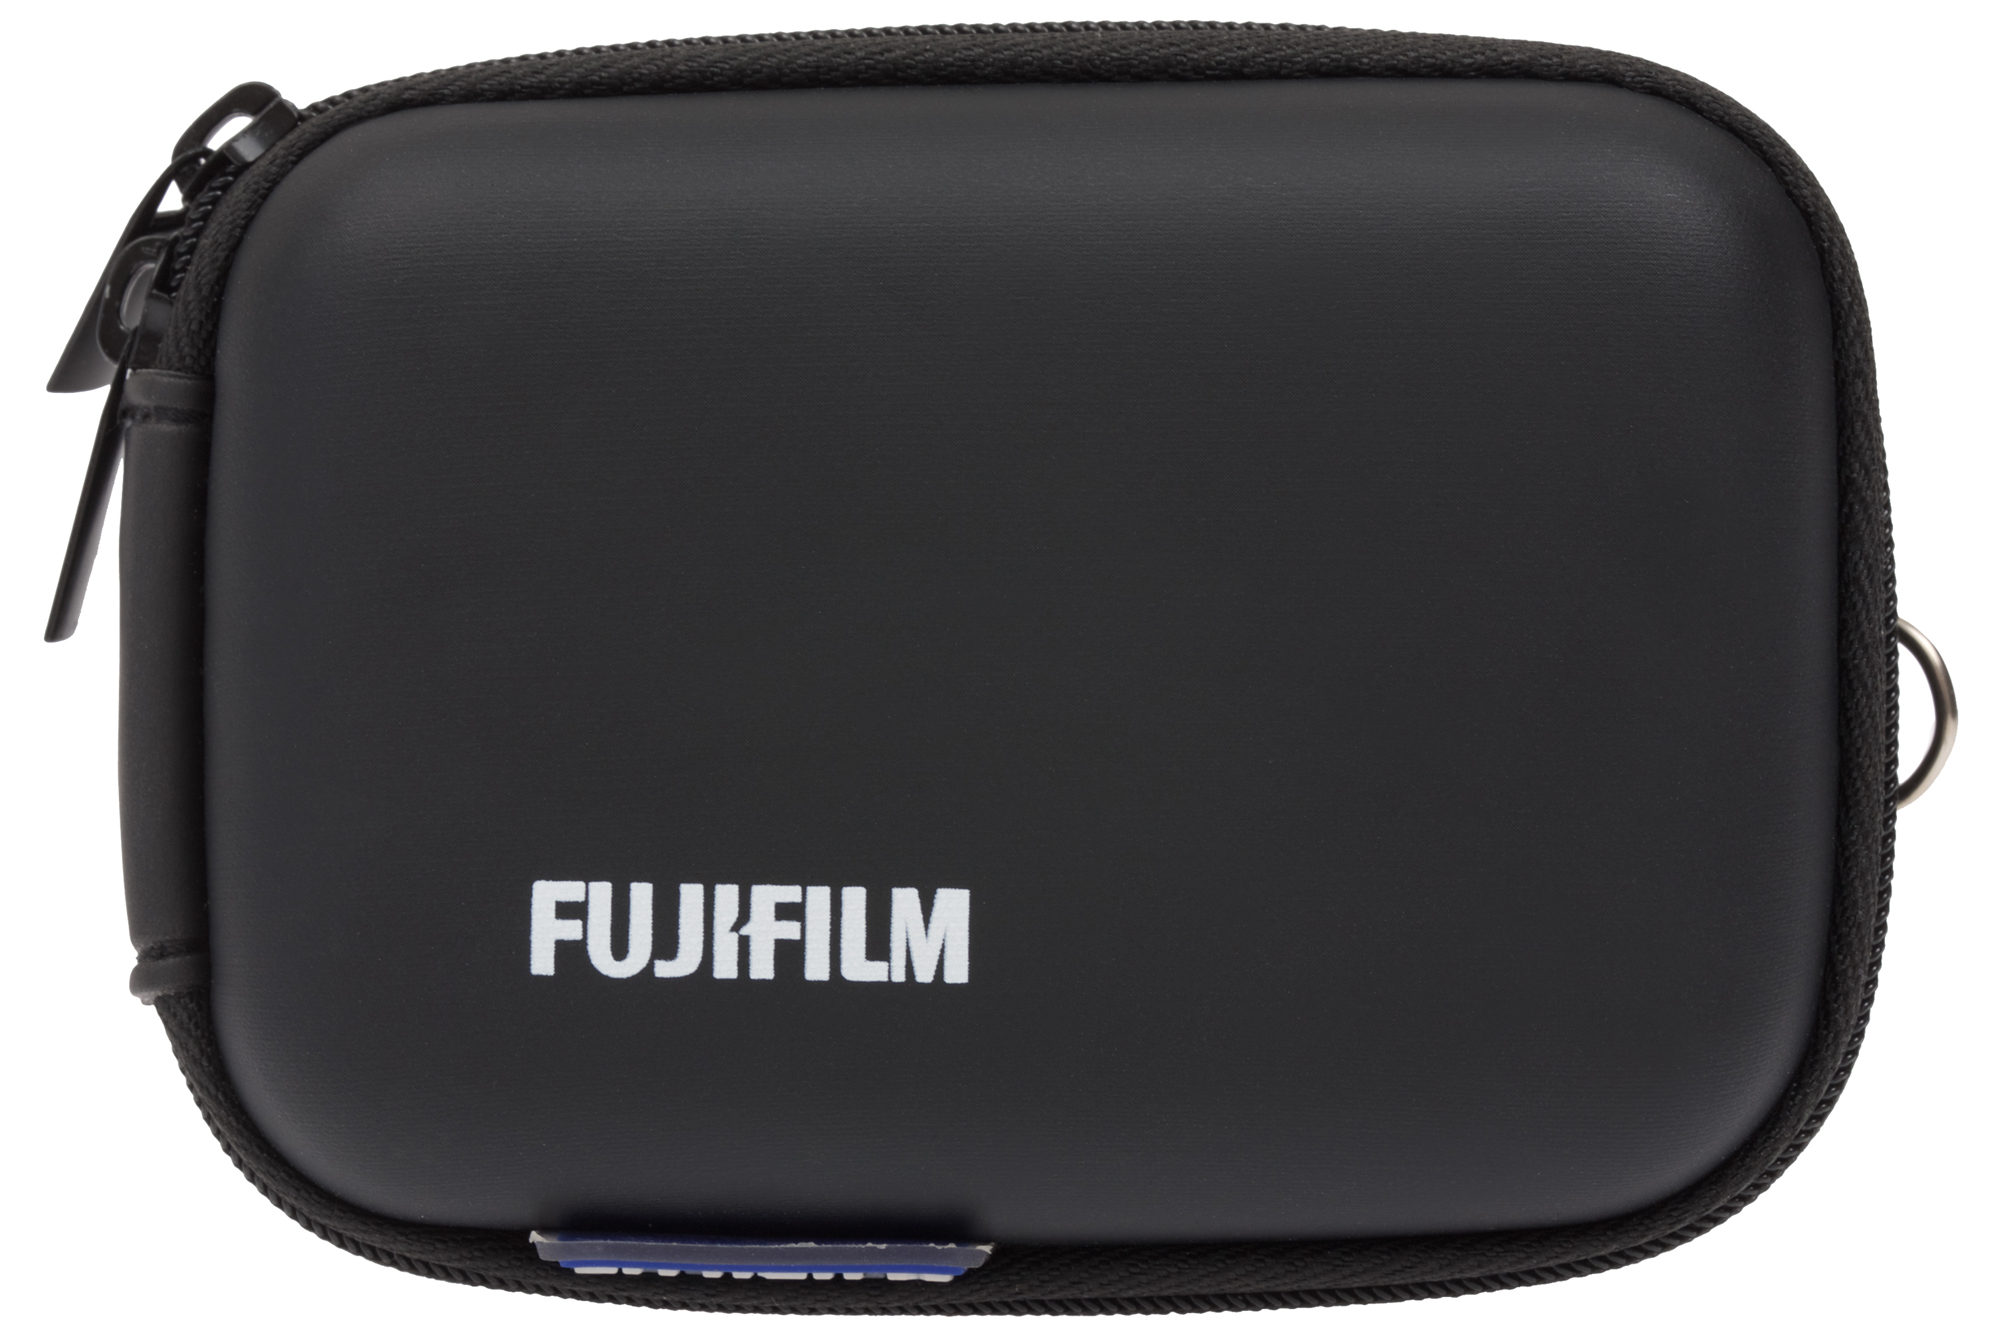 Fujifilm Universal Zipped Hard Case